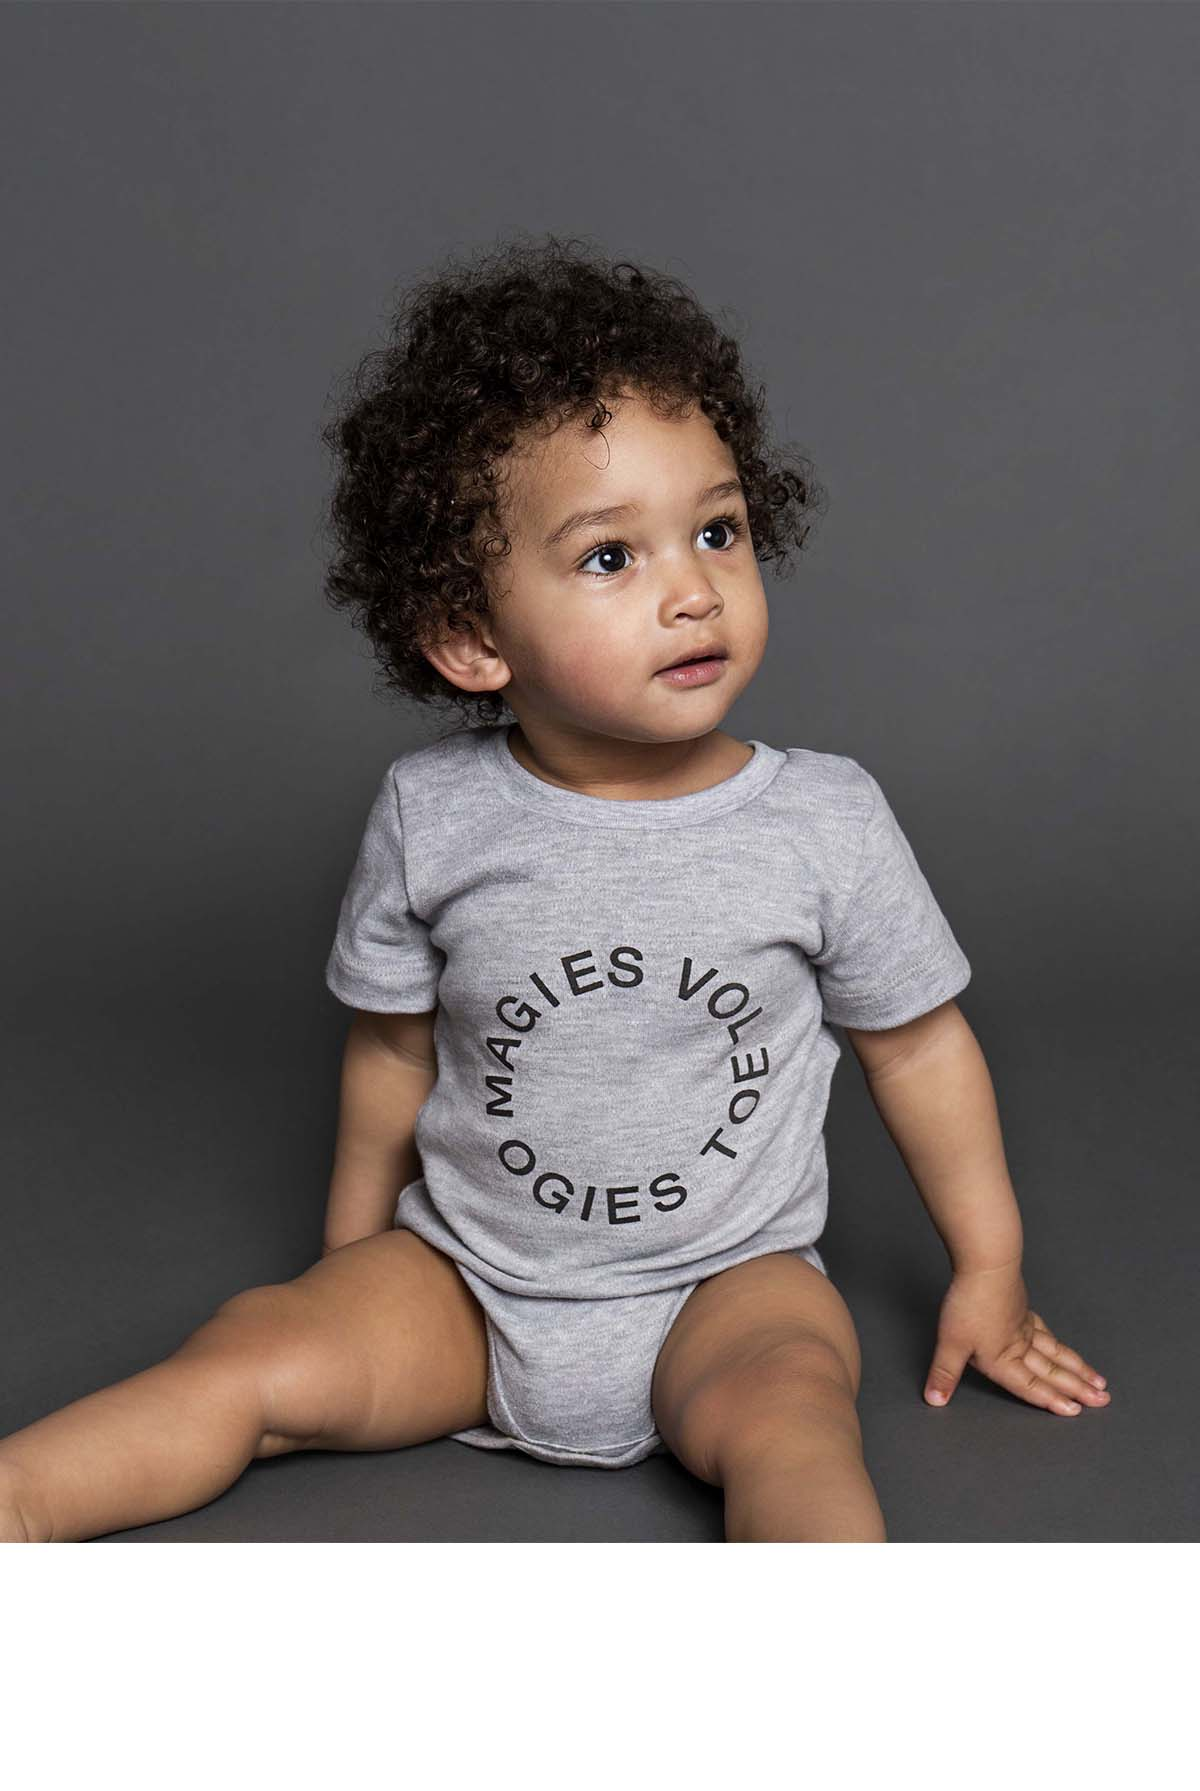 MAGIES VOL, OGIES TOE SHORT SLEEVE BABYGRO